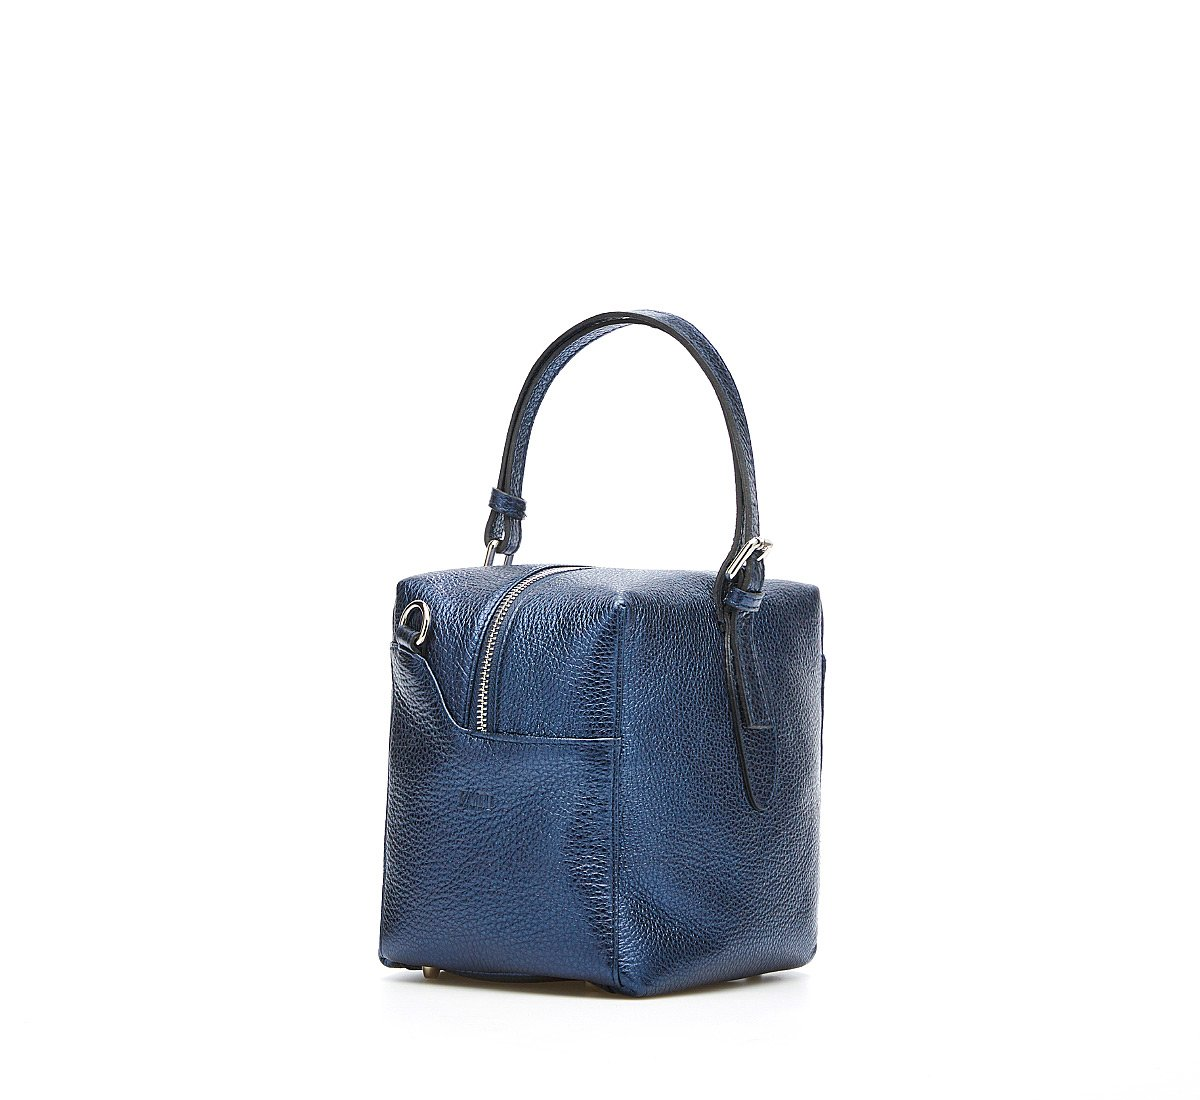 Pannier bag in leather